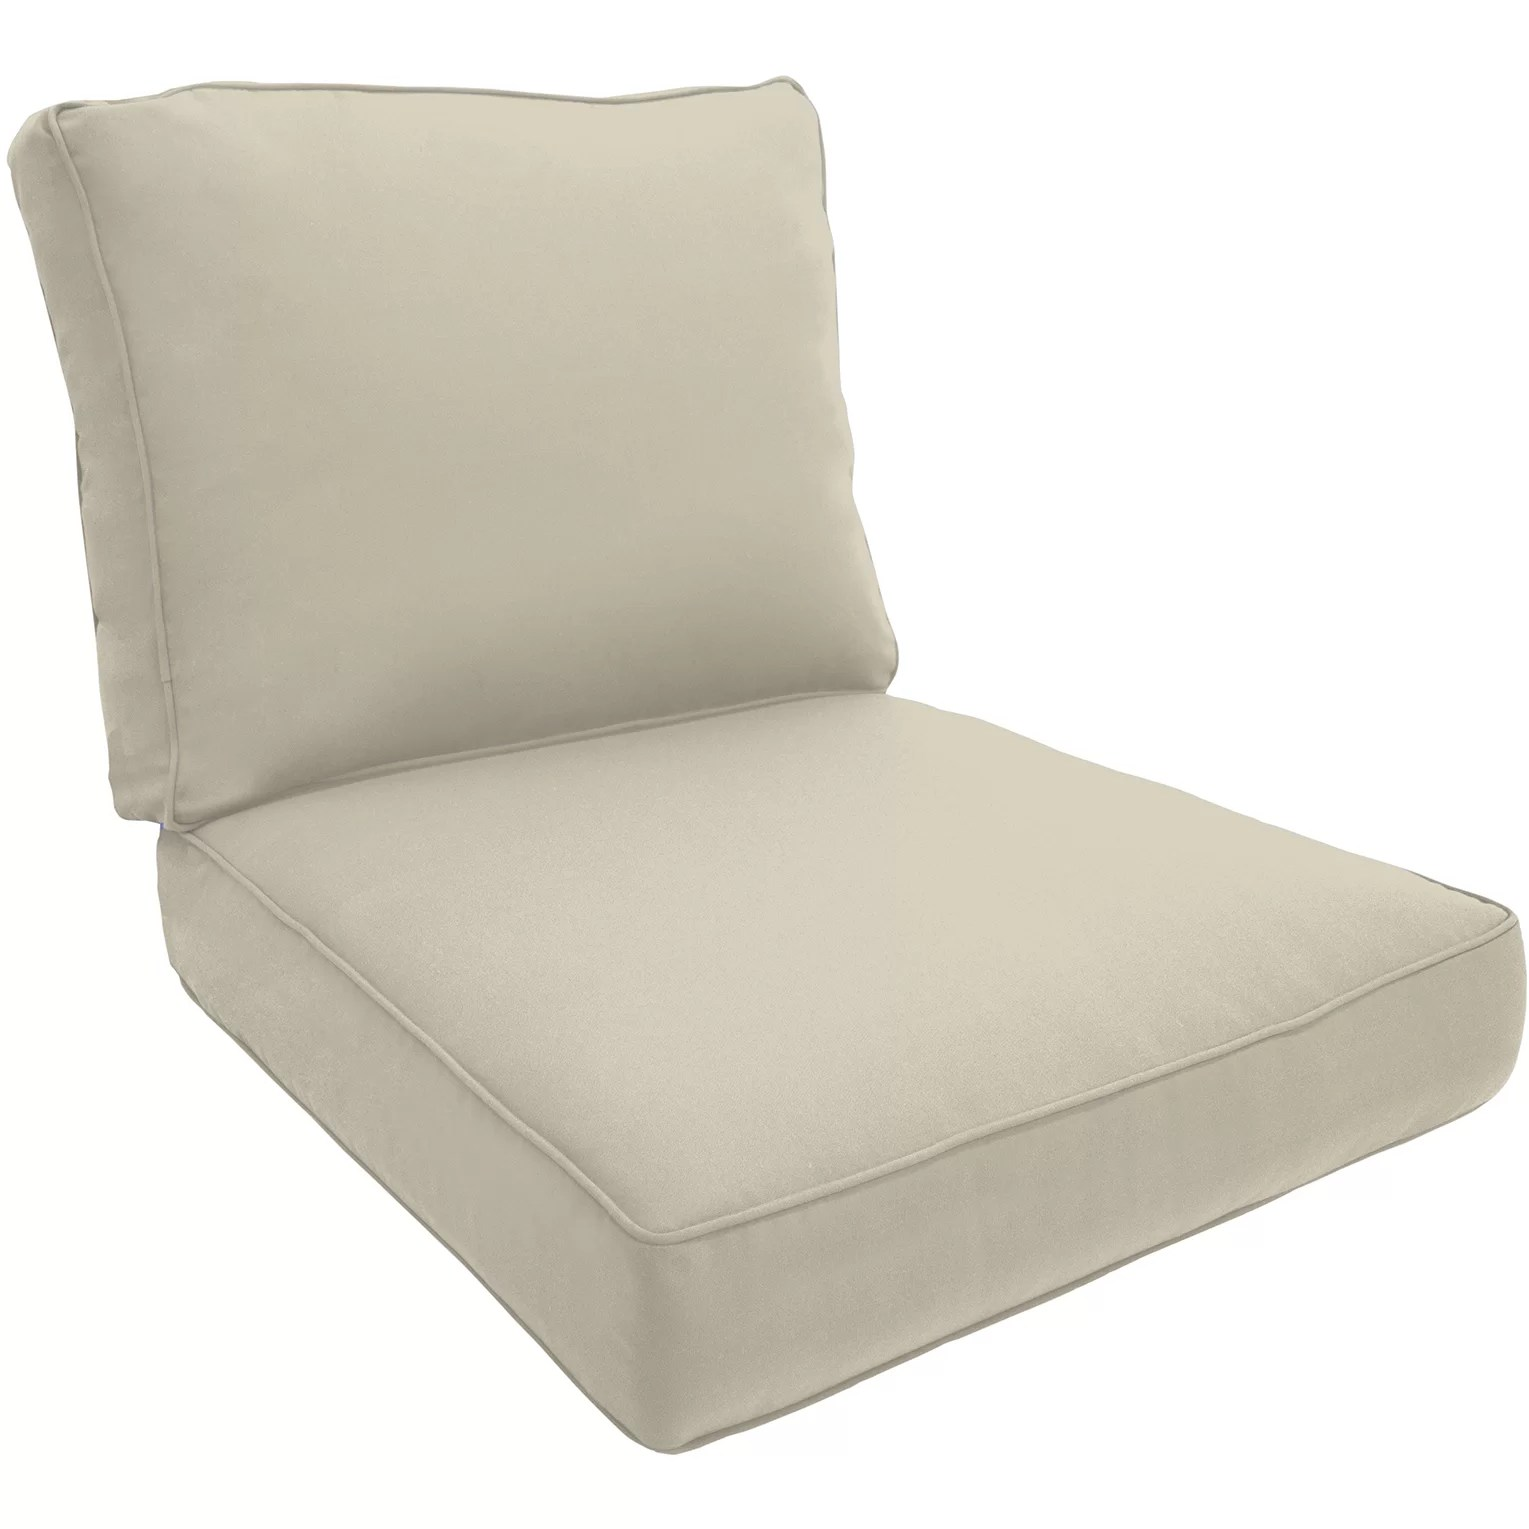 outdoor chair pad kohl lounge met voetenbank double piped cushion and reviews